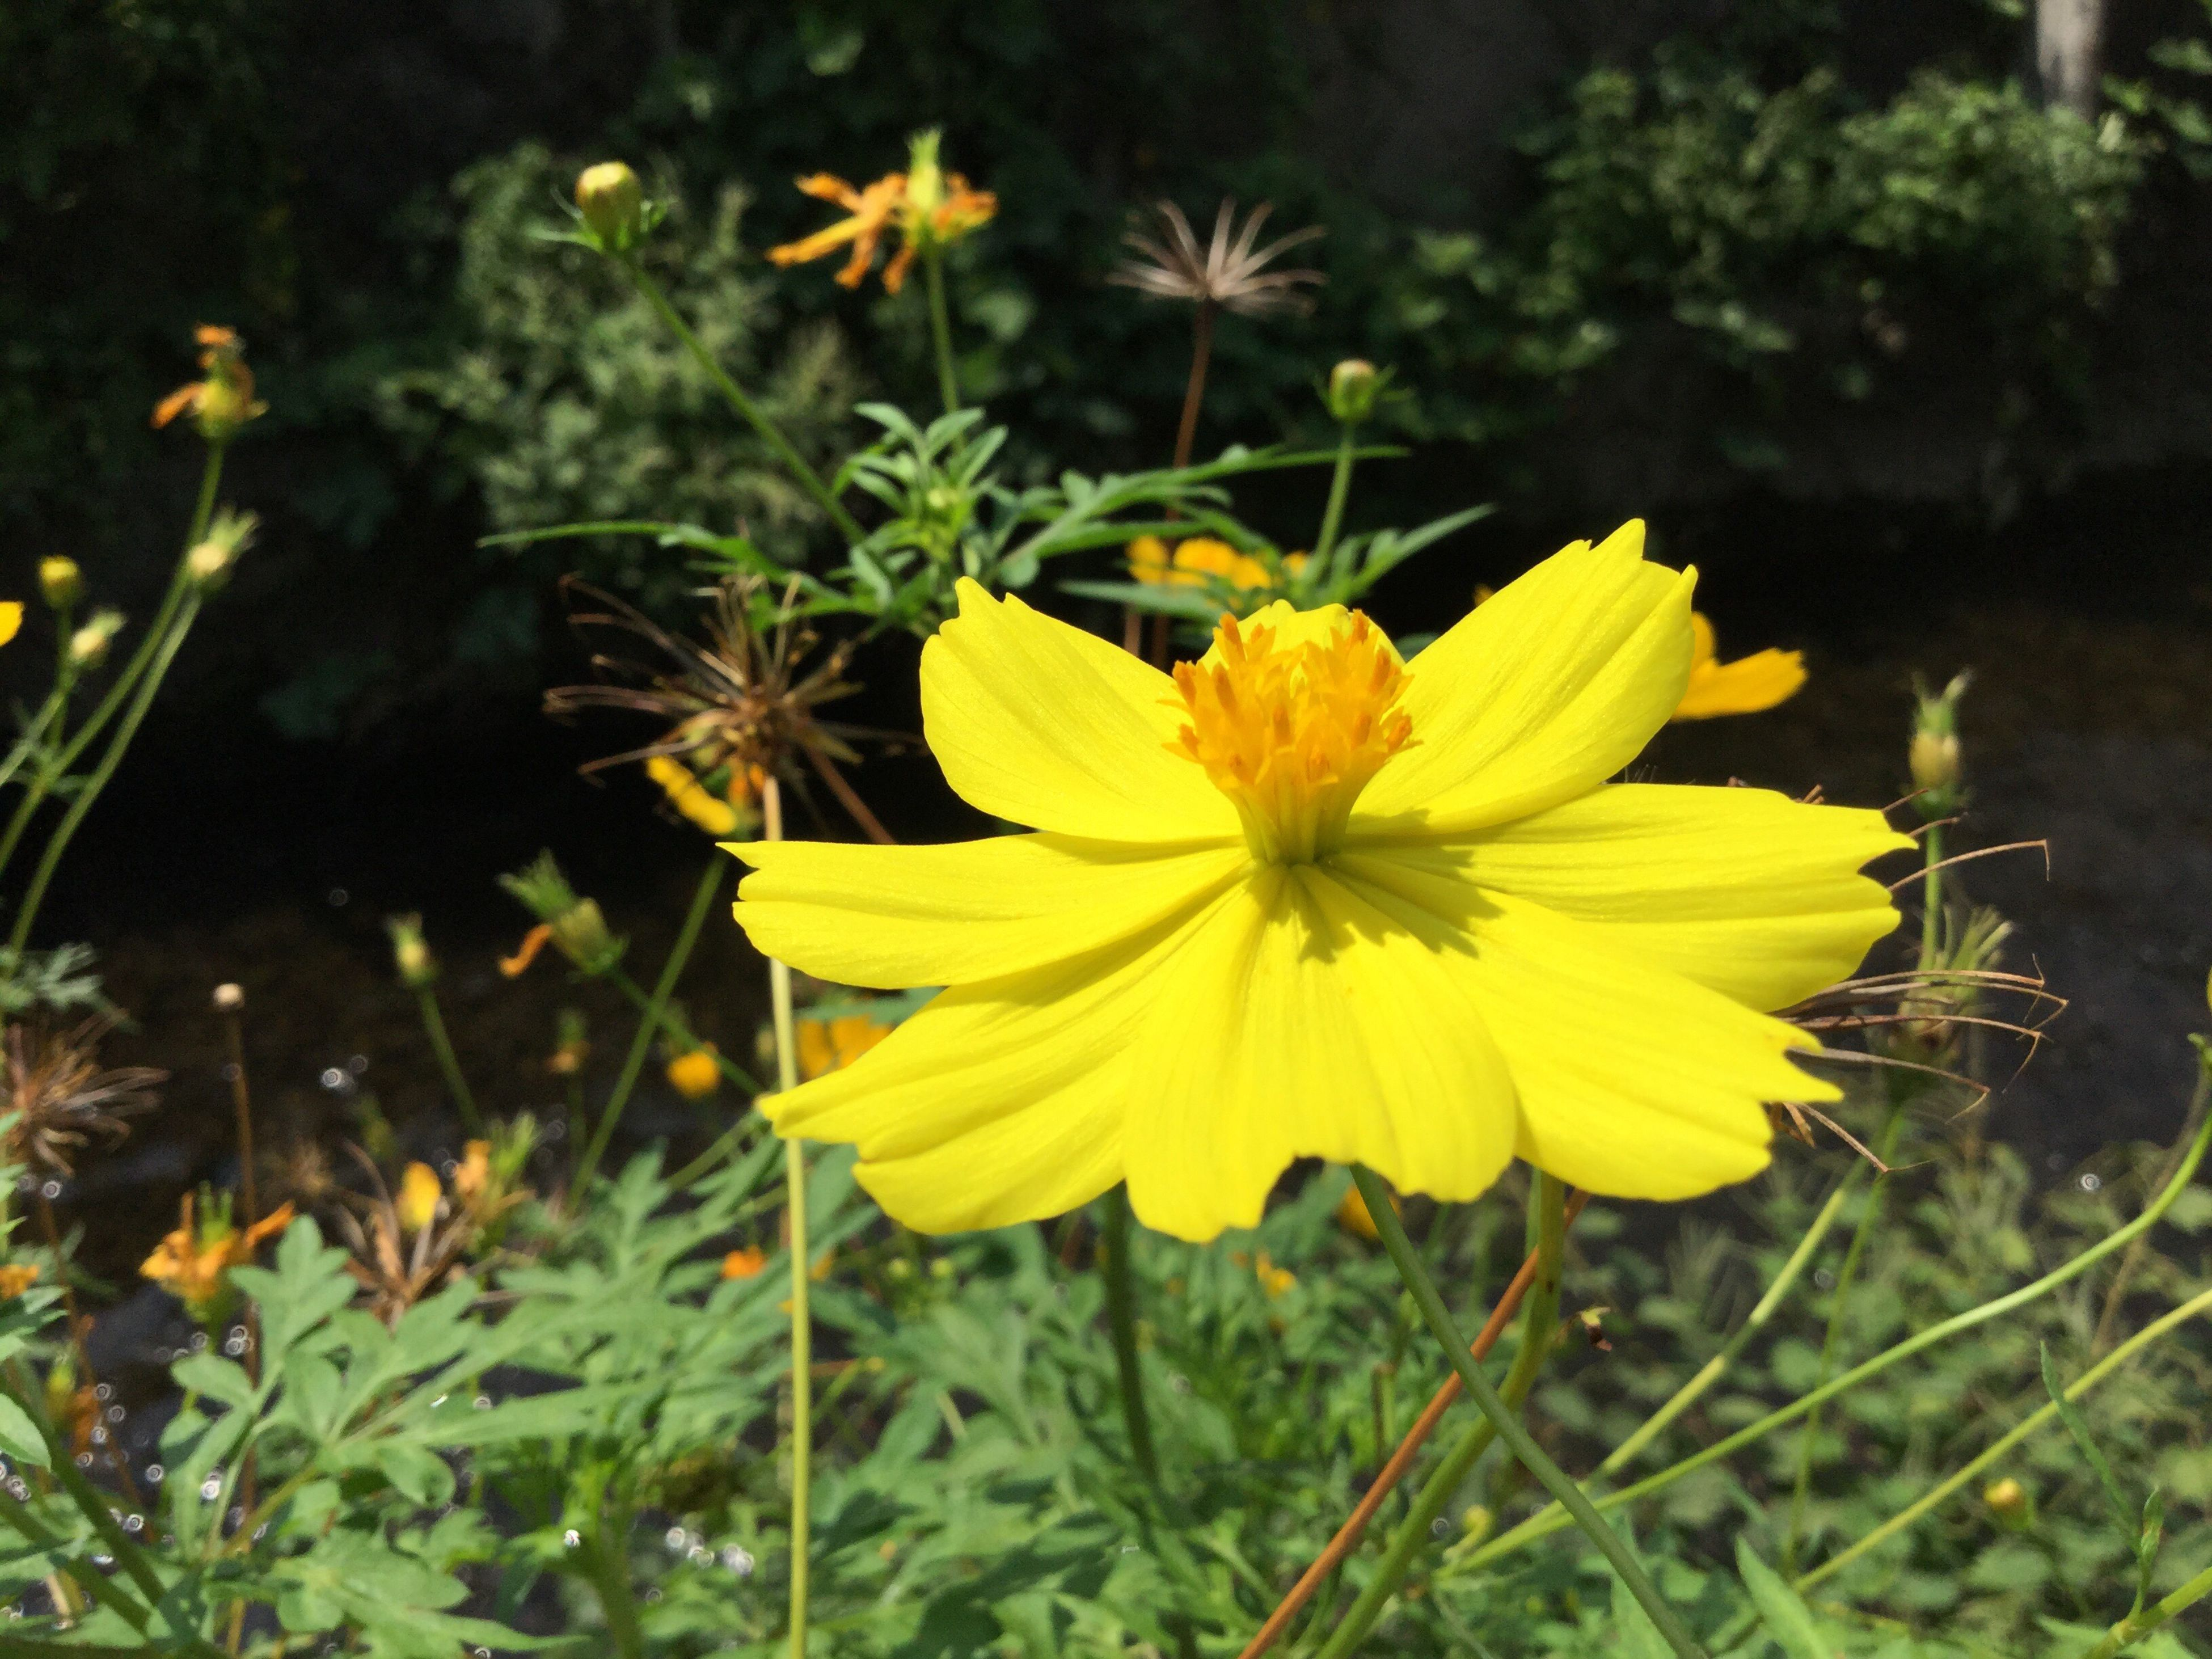 flower, fragility, freshness, petal, yellow, flower head, growth, beauty in nature, close-up, stem, plant, springtime, in bloom, season, nature, blossom, focus on foreground, blooming, vibrant color, botany, day, outdoors, wildflower, daisies, flowering plant, bloom, formal garden, yellow color, uncultivated